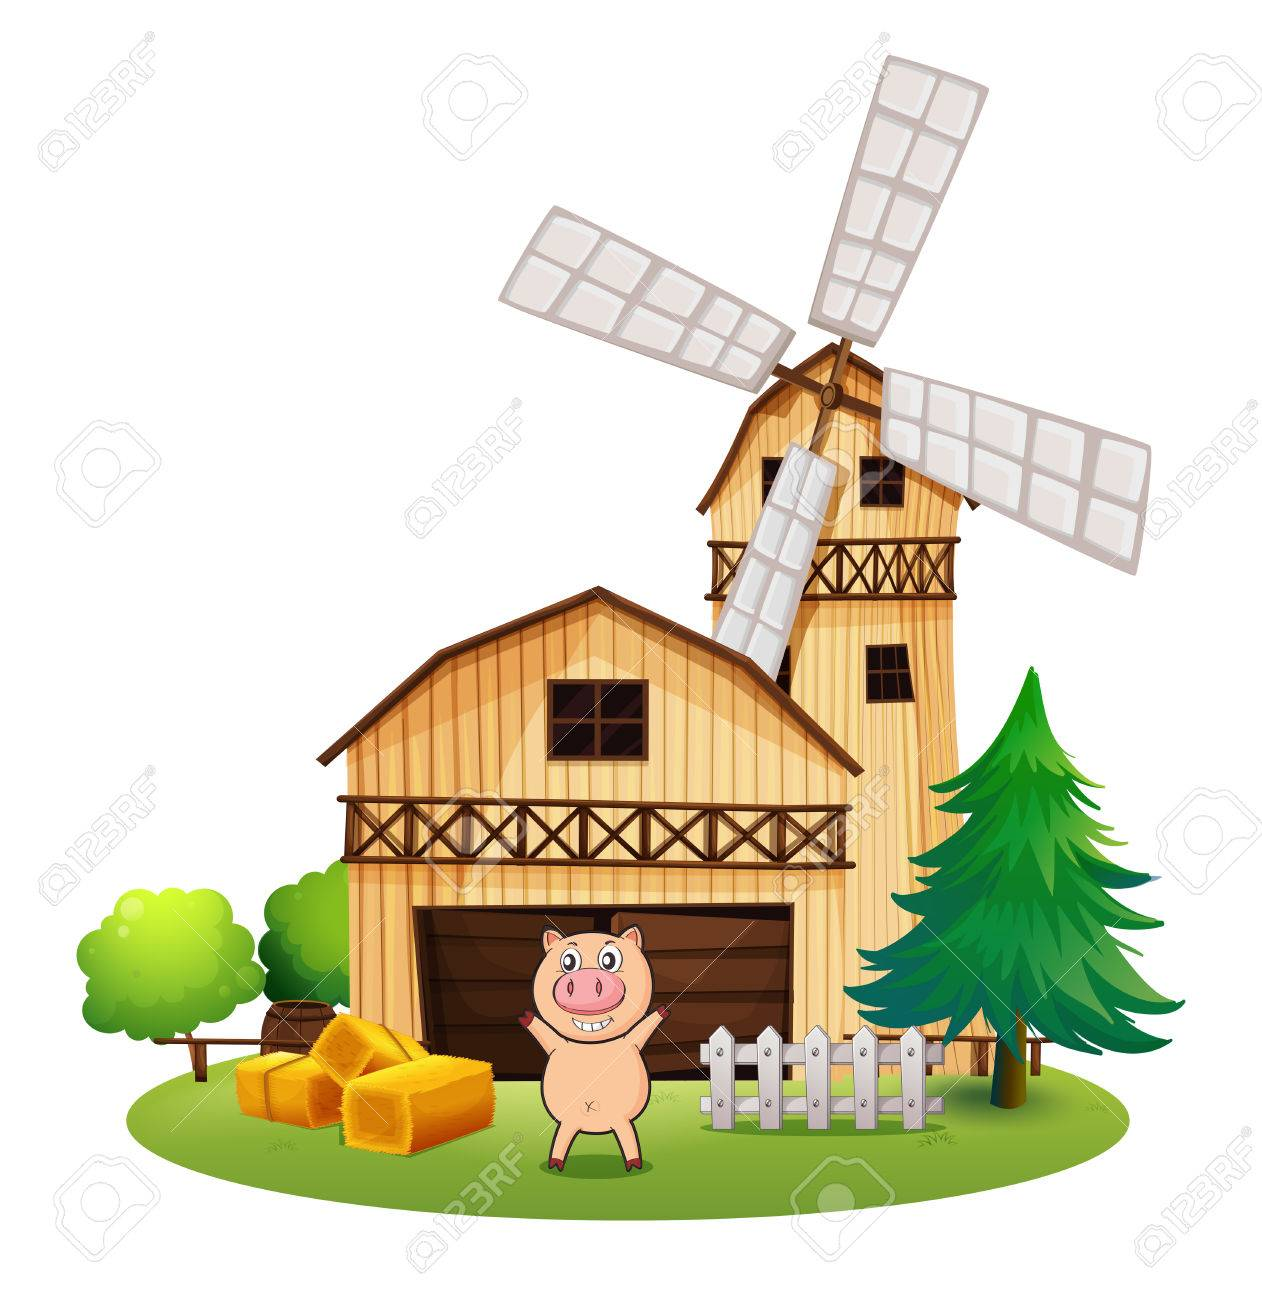 Illustration Of A Playful Pig Outside The Wooden Barnhouse With Windmill On White Background